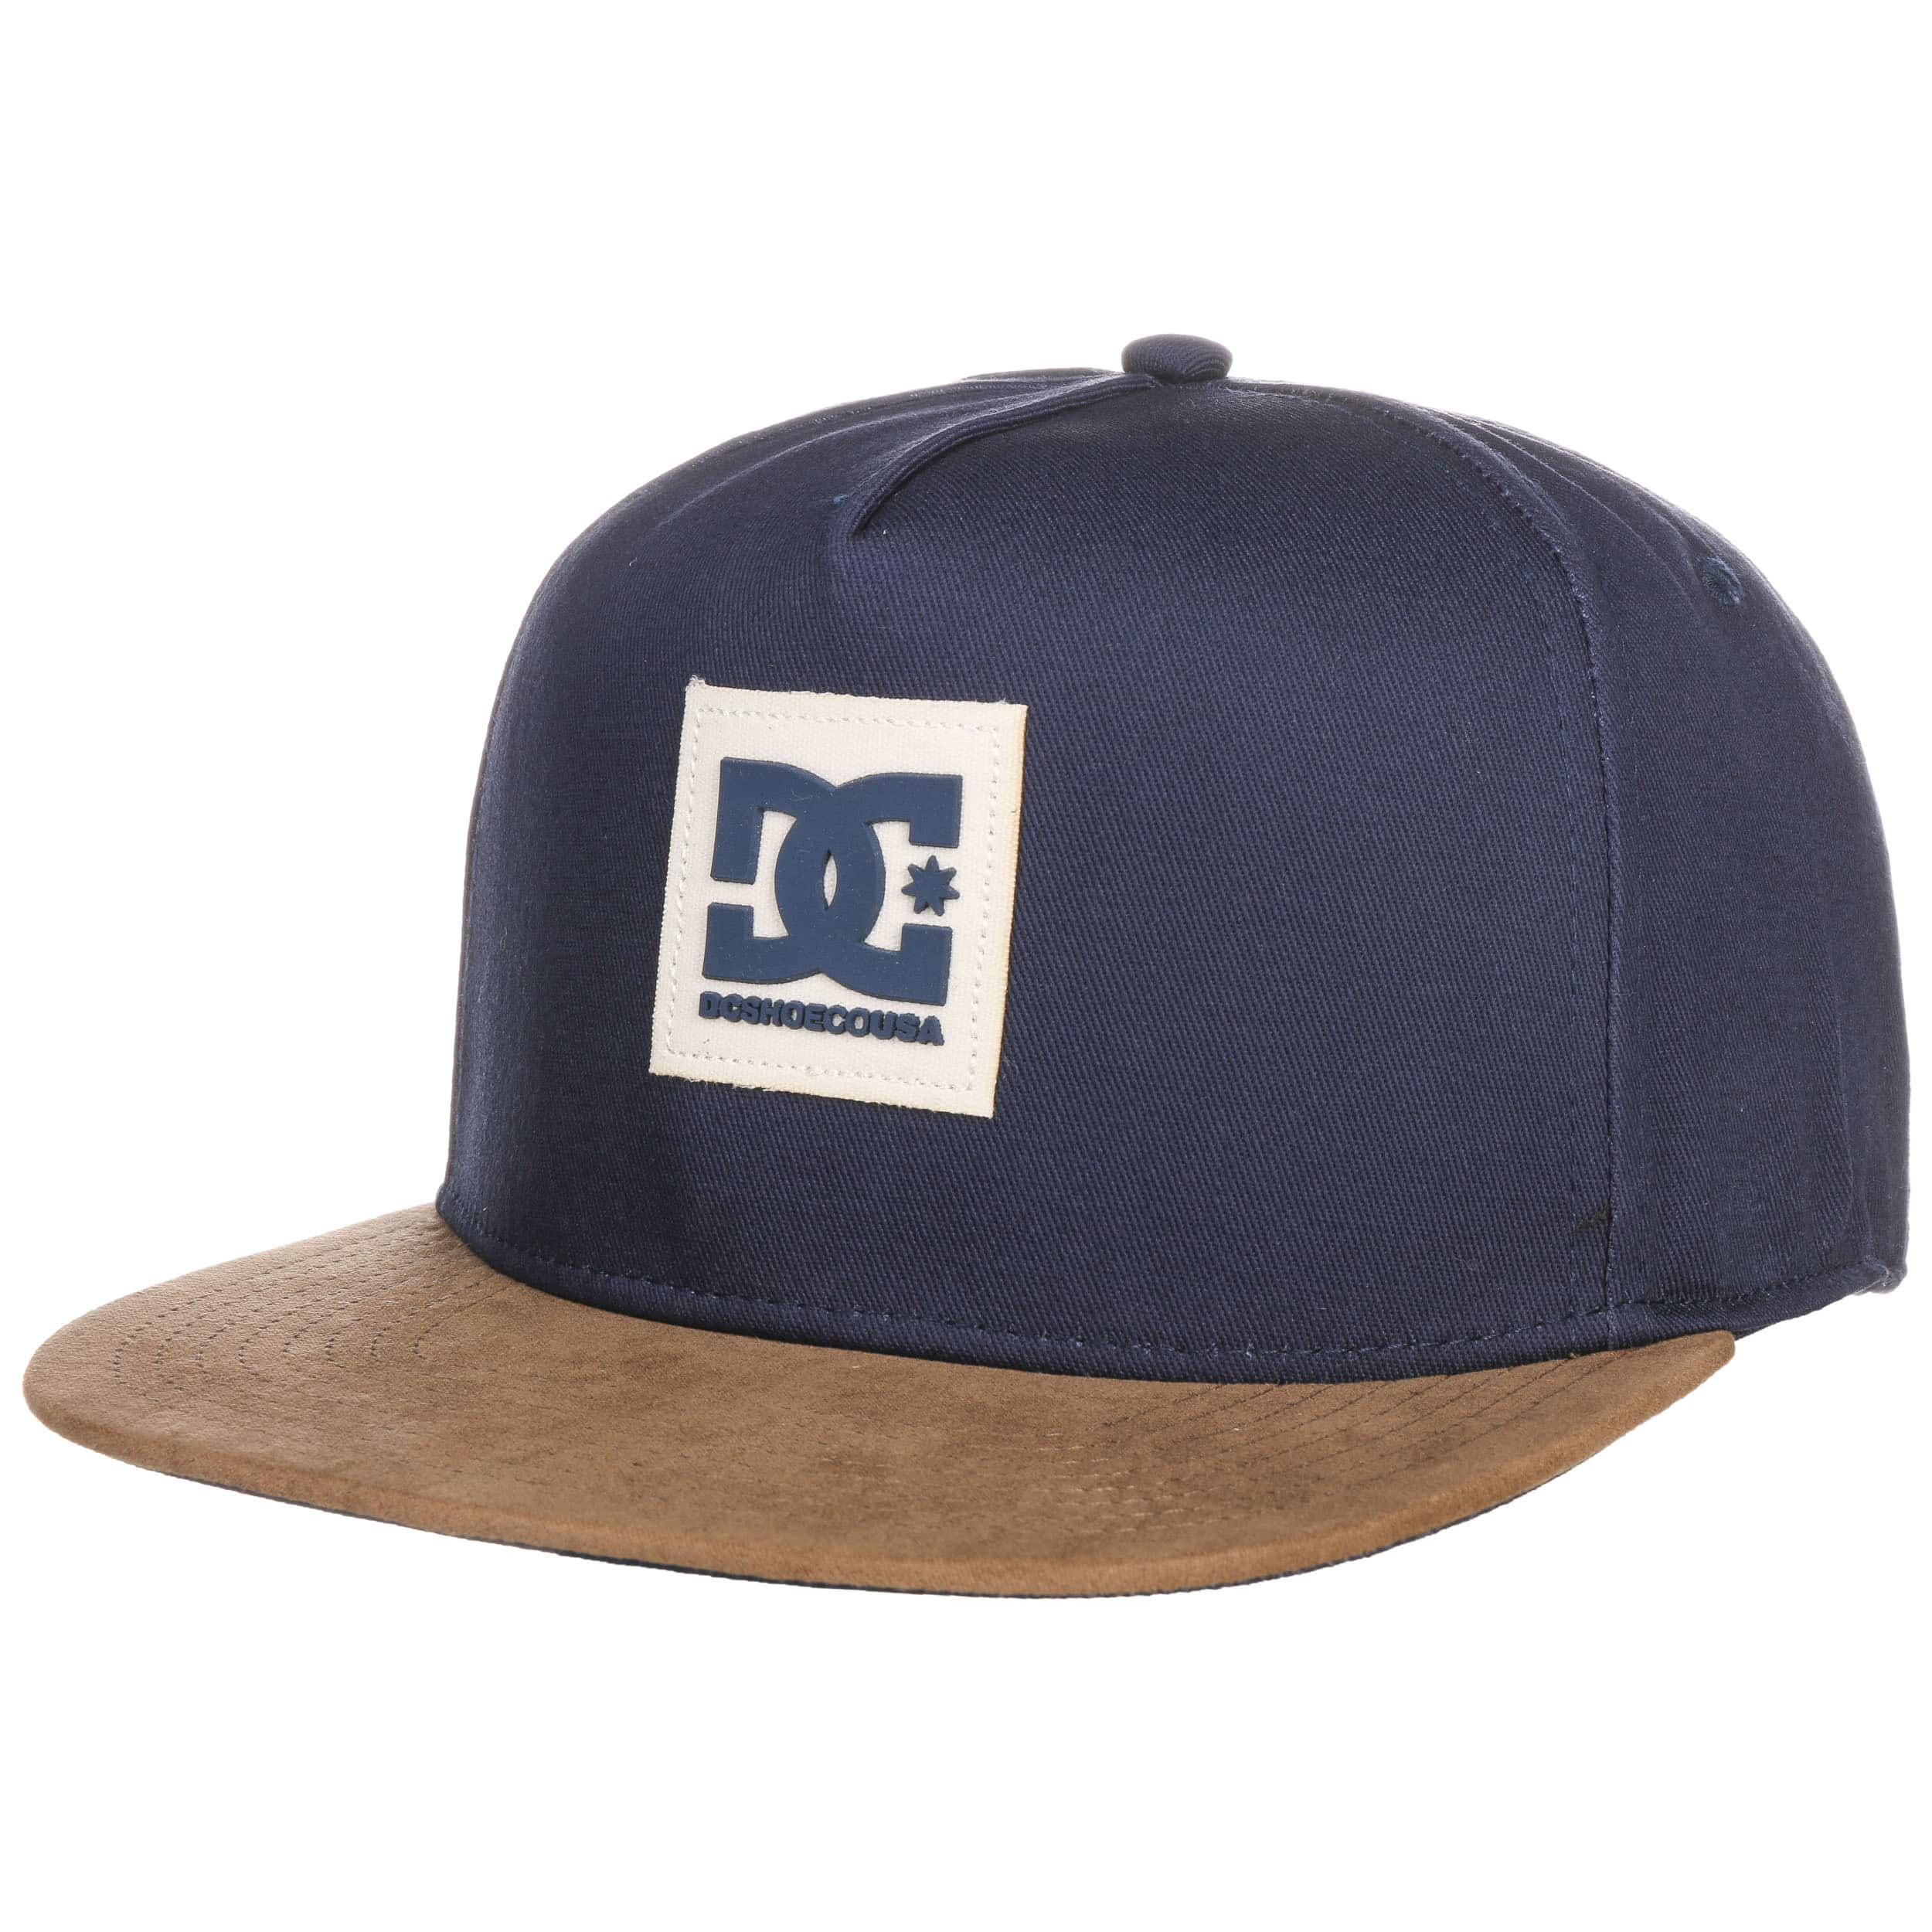 ... Dacks Snapback Cap by DC Shoes Co - navy 5 ... a1deff083dd